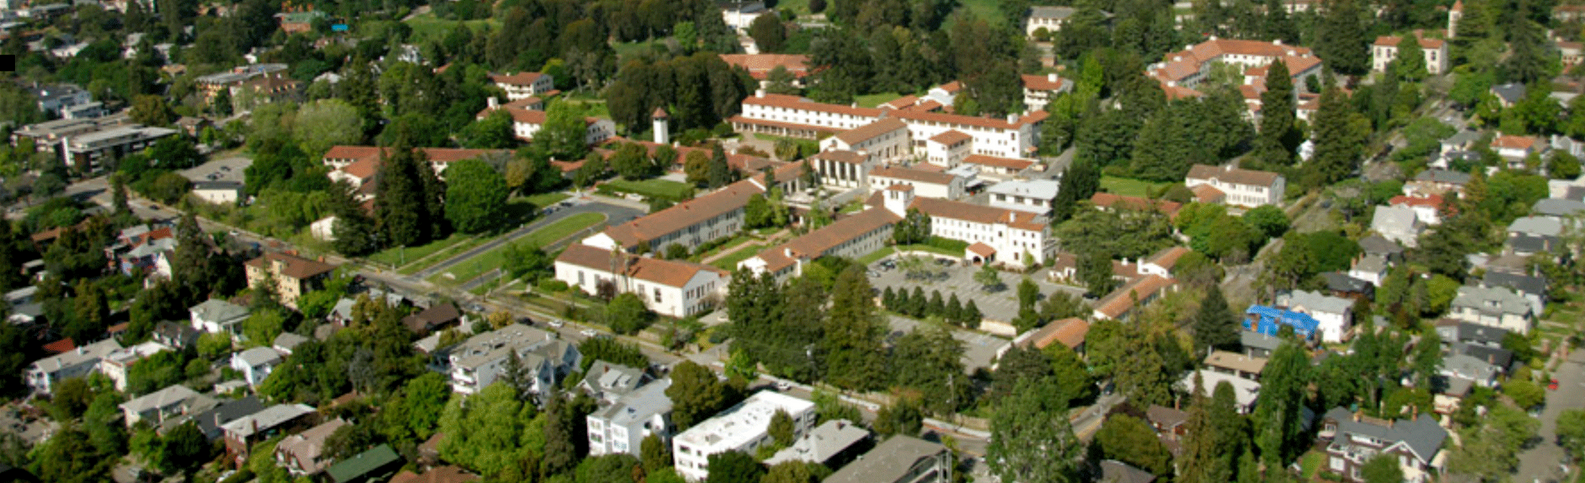 aerial view of clark kerr campus, UC Berkeley